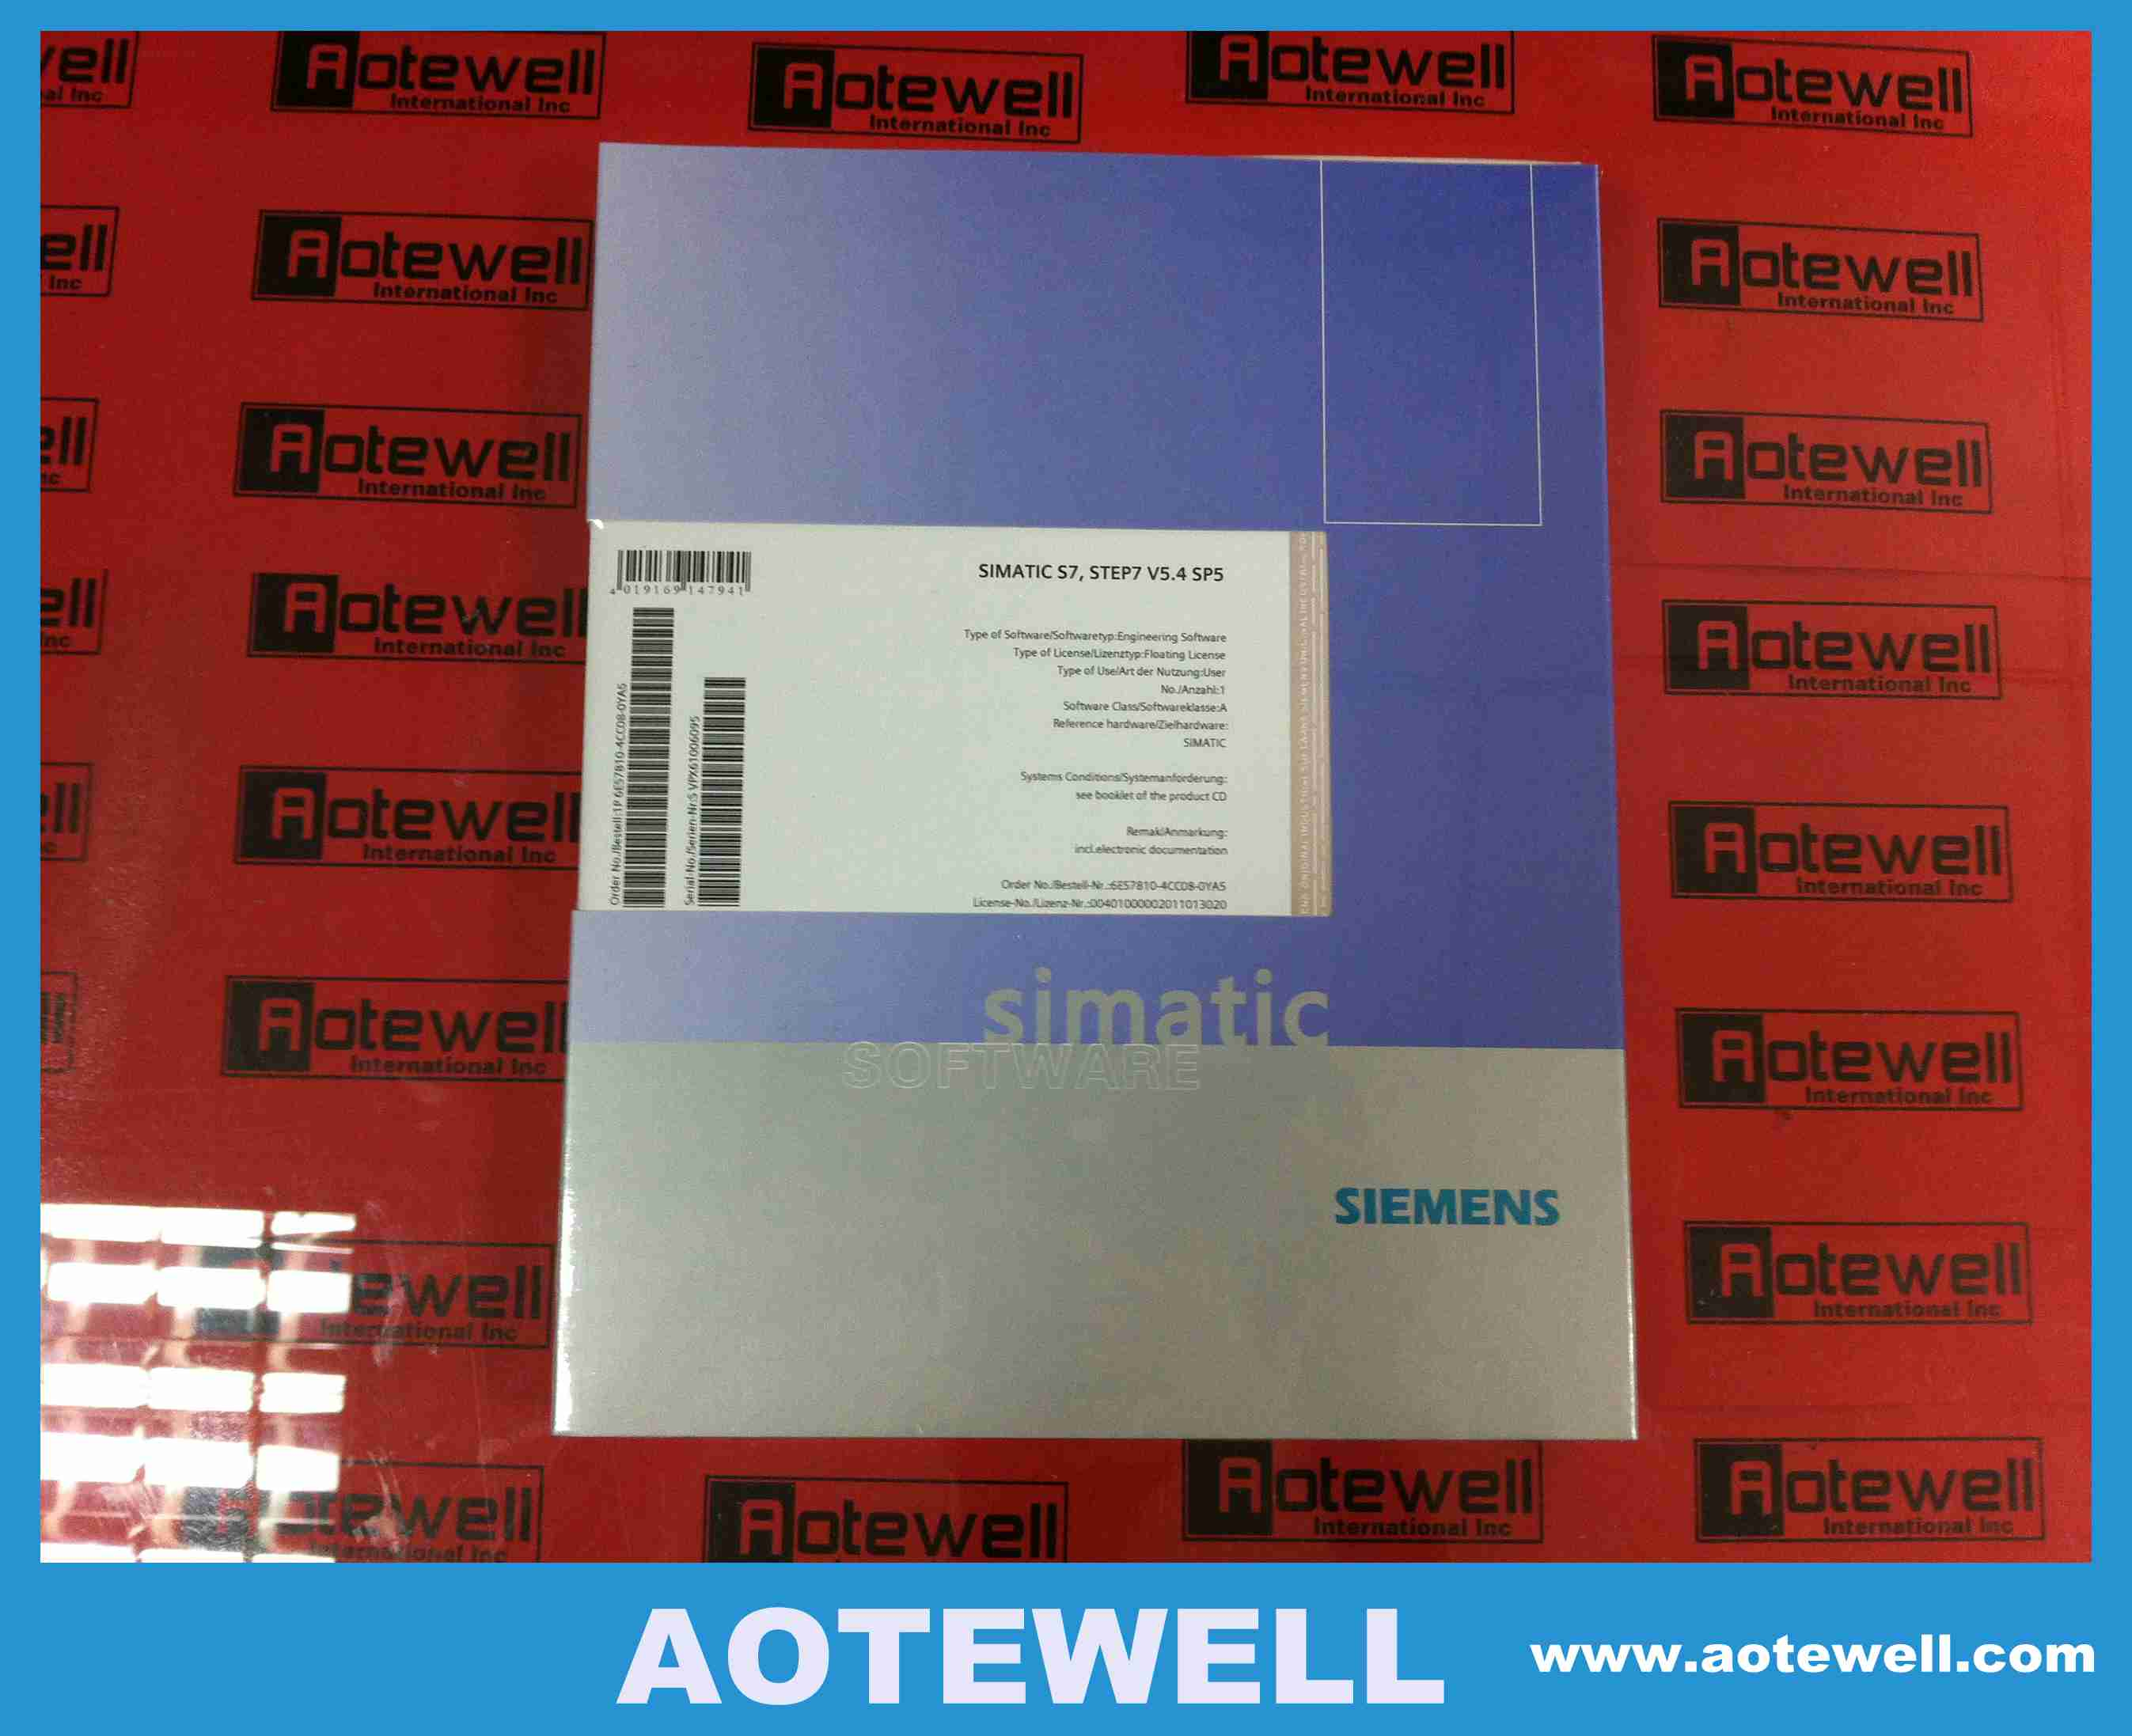 Siemens SIMATIC S7, STEP7 V5.4,6ES7810-4CC08-0YA5 Automotion Software in stock